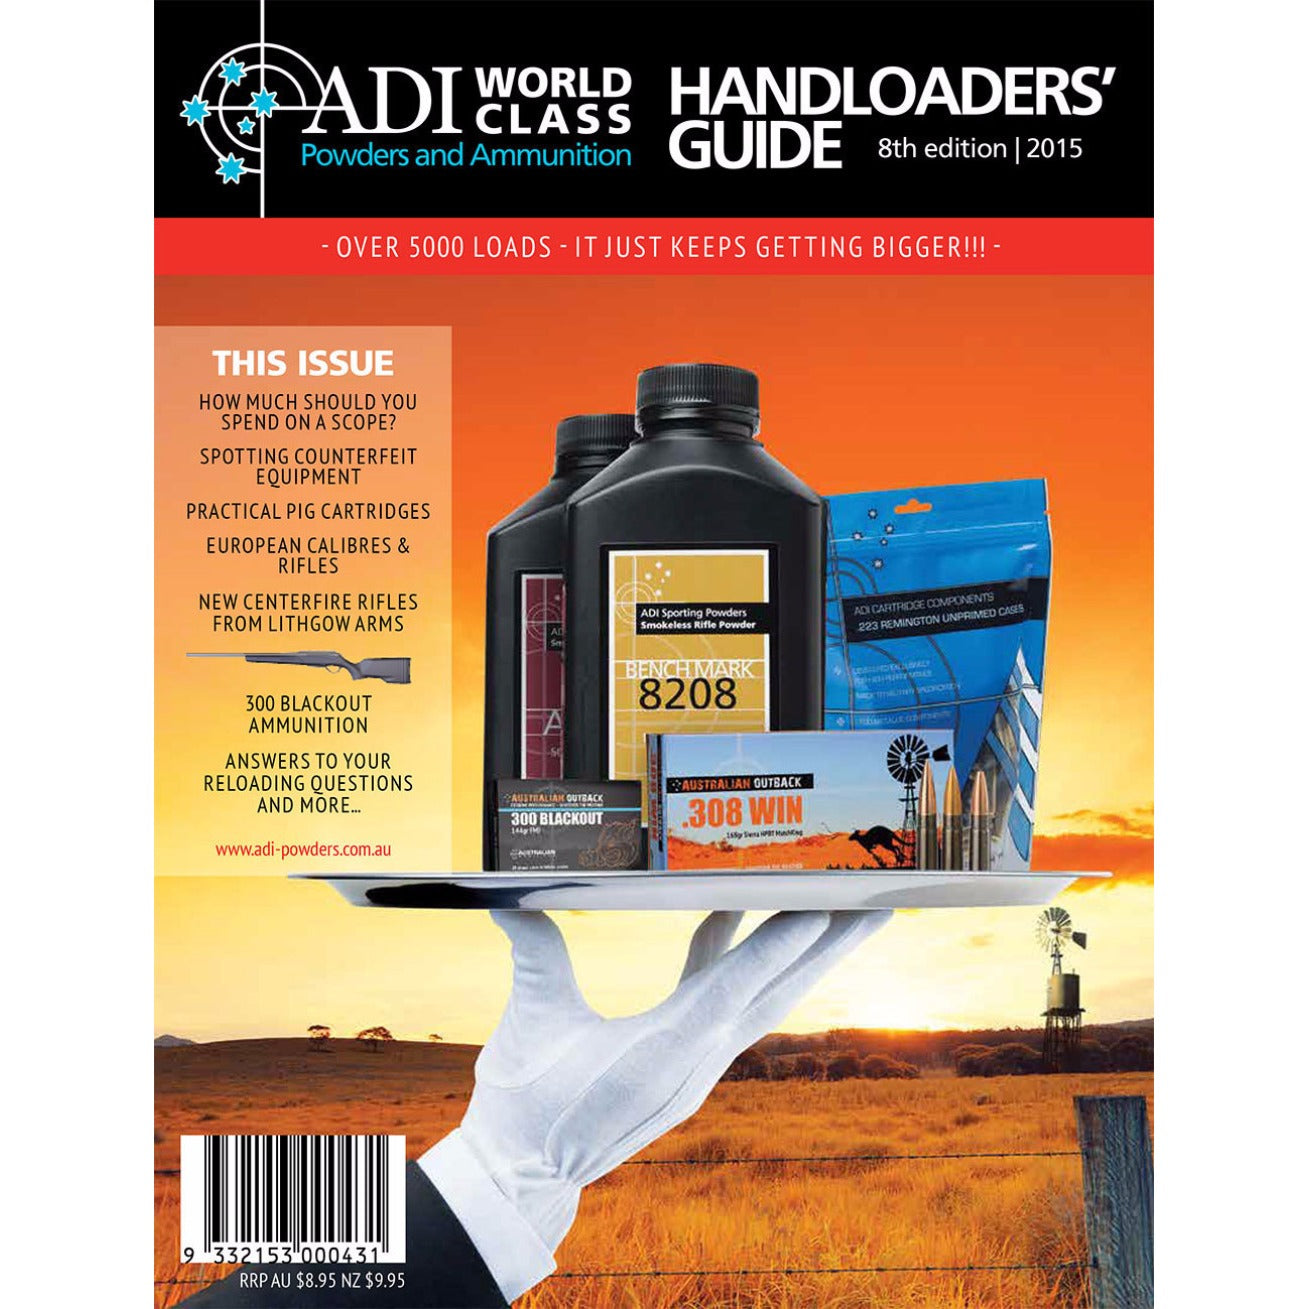 adi handloaders guide 9th edition the qstore rh q store com au